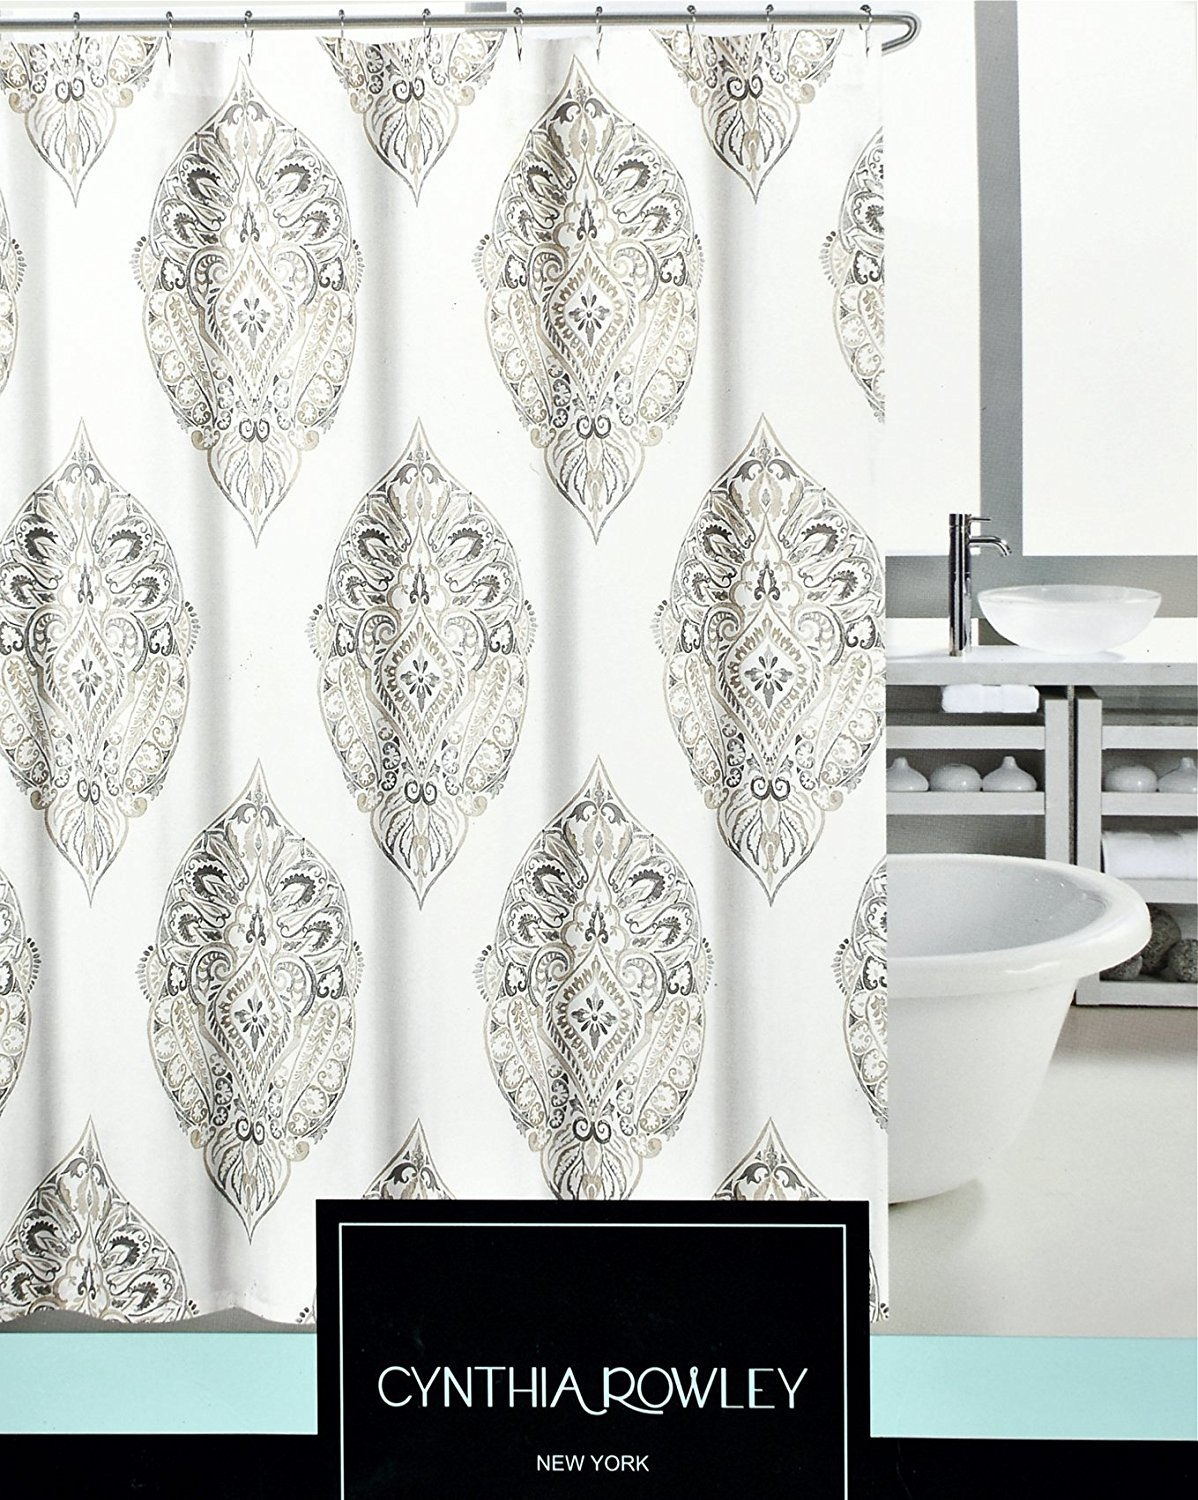 Buy Bohemian Style Block Print Shower Curtain By Cynthia Rowley Moroccan Marrakech Damask Paisley Tile Pattern In Teal Blue Or Beige Tan On White Cotton Fabric Beige In Cheap Price On Alibaba Com